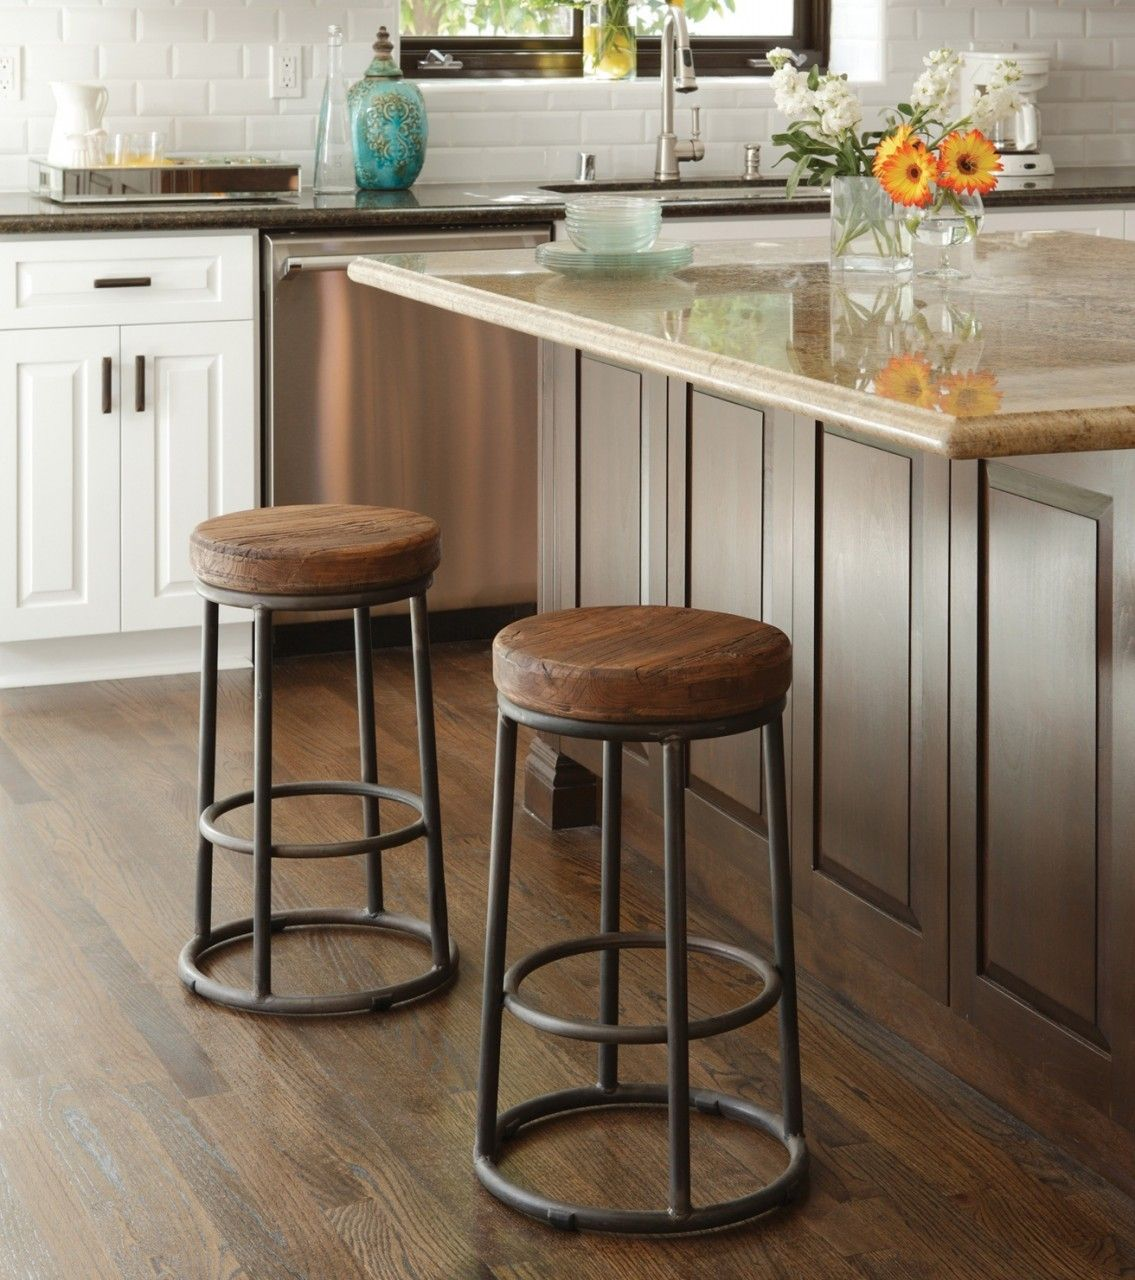 Industrial Rustic Barstool Rustic Bar Stools Kitchen Bar Decor Kitchen Bar Stools